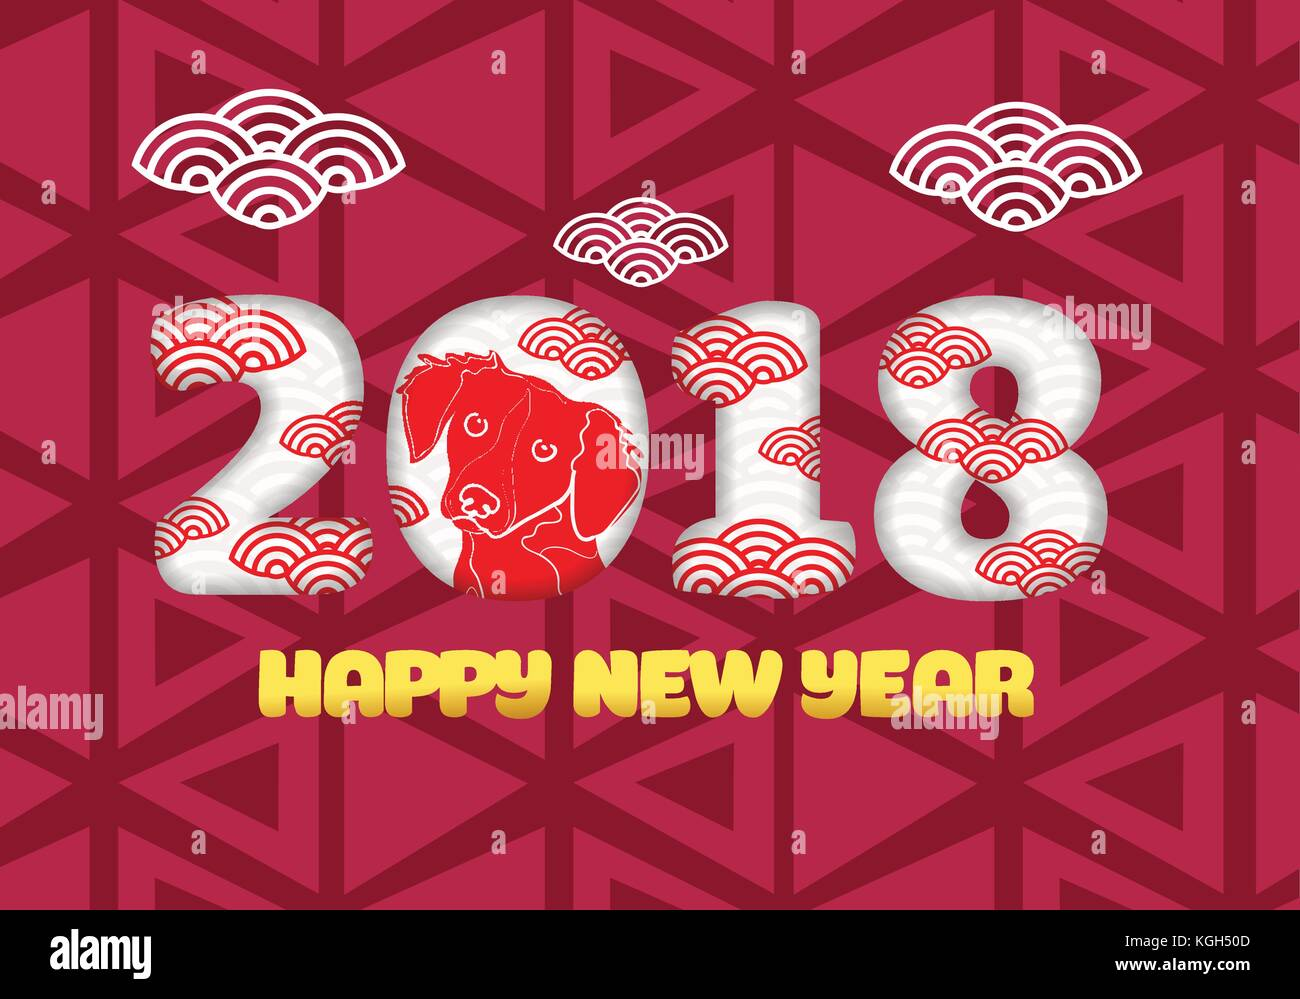 Chinese New Year 2018 Festive Vector Card Design With Cute Dog Stock